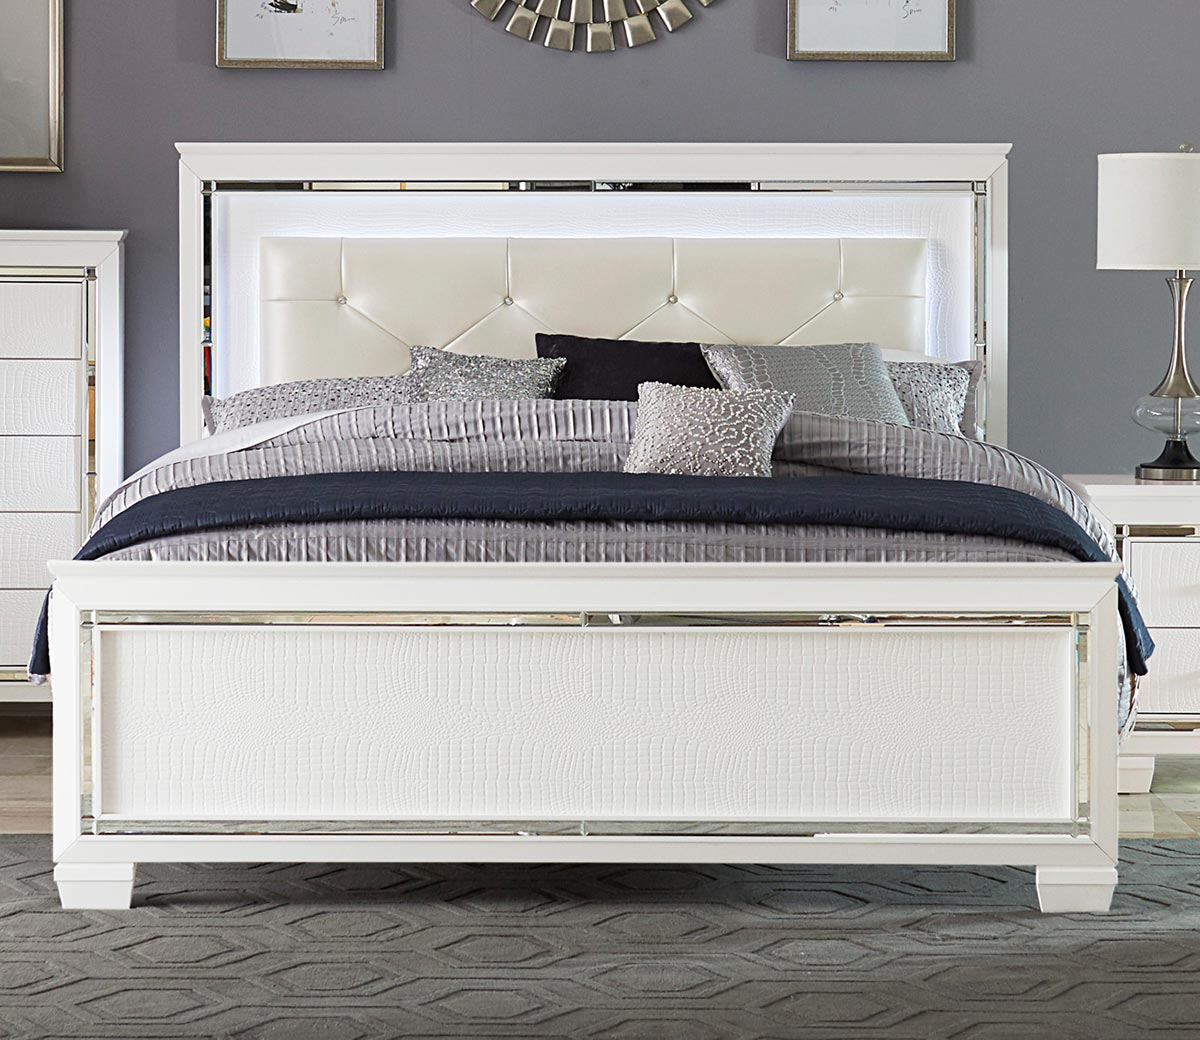 Homelegance Allura Bed with LED Lighting - White